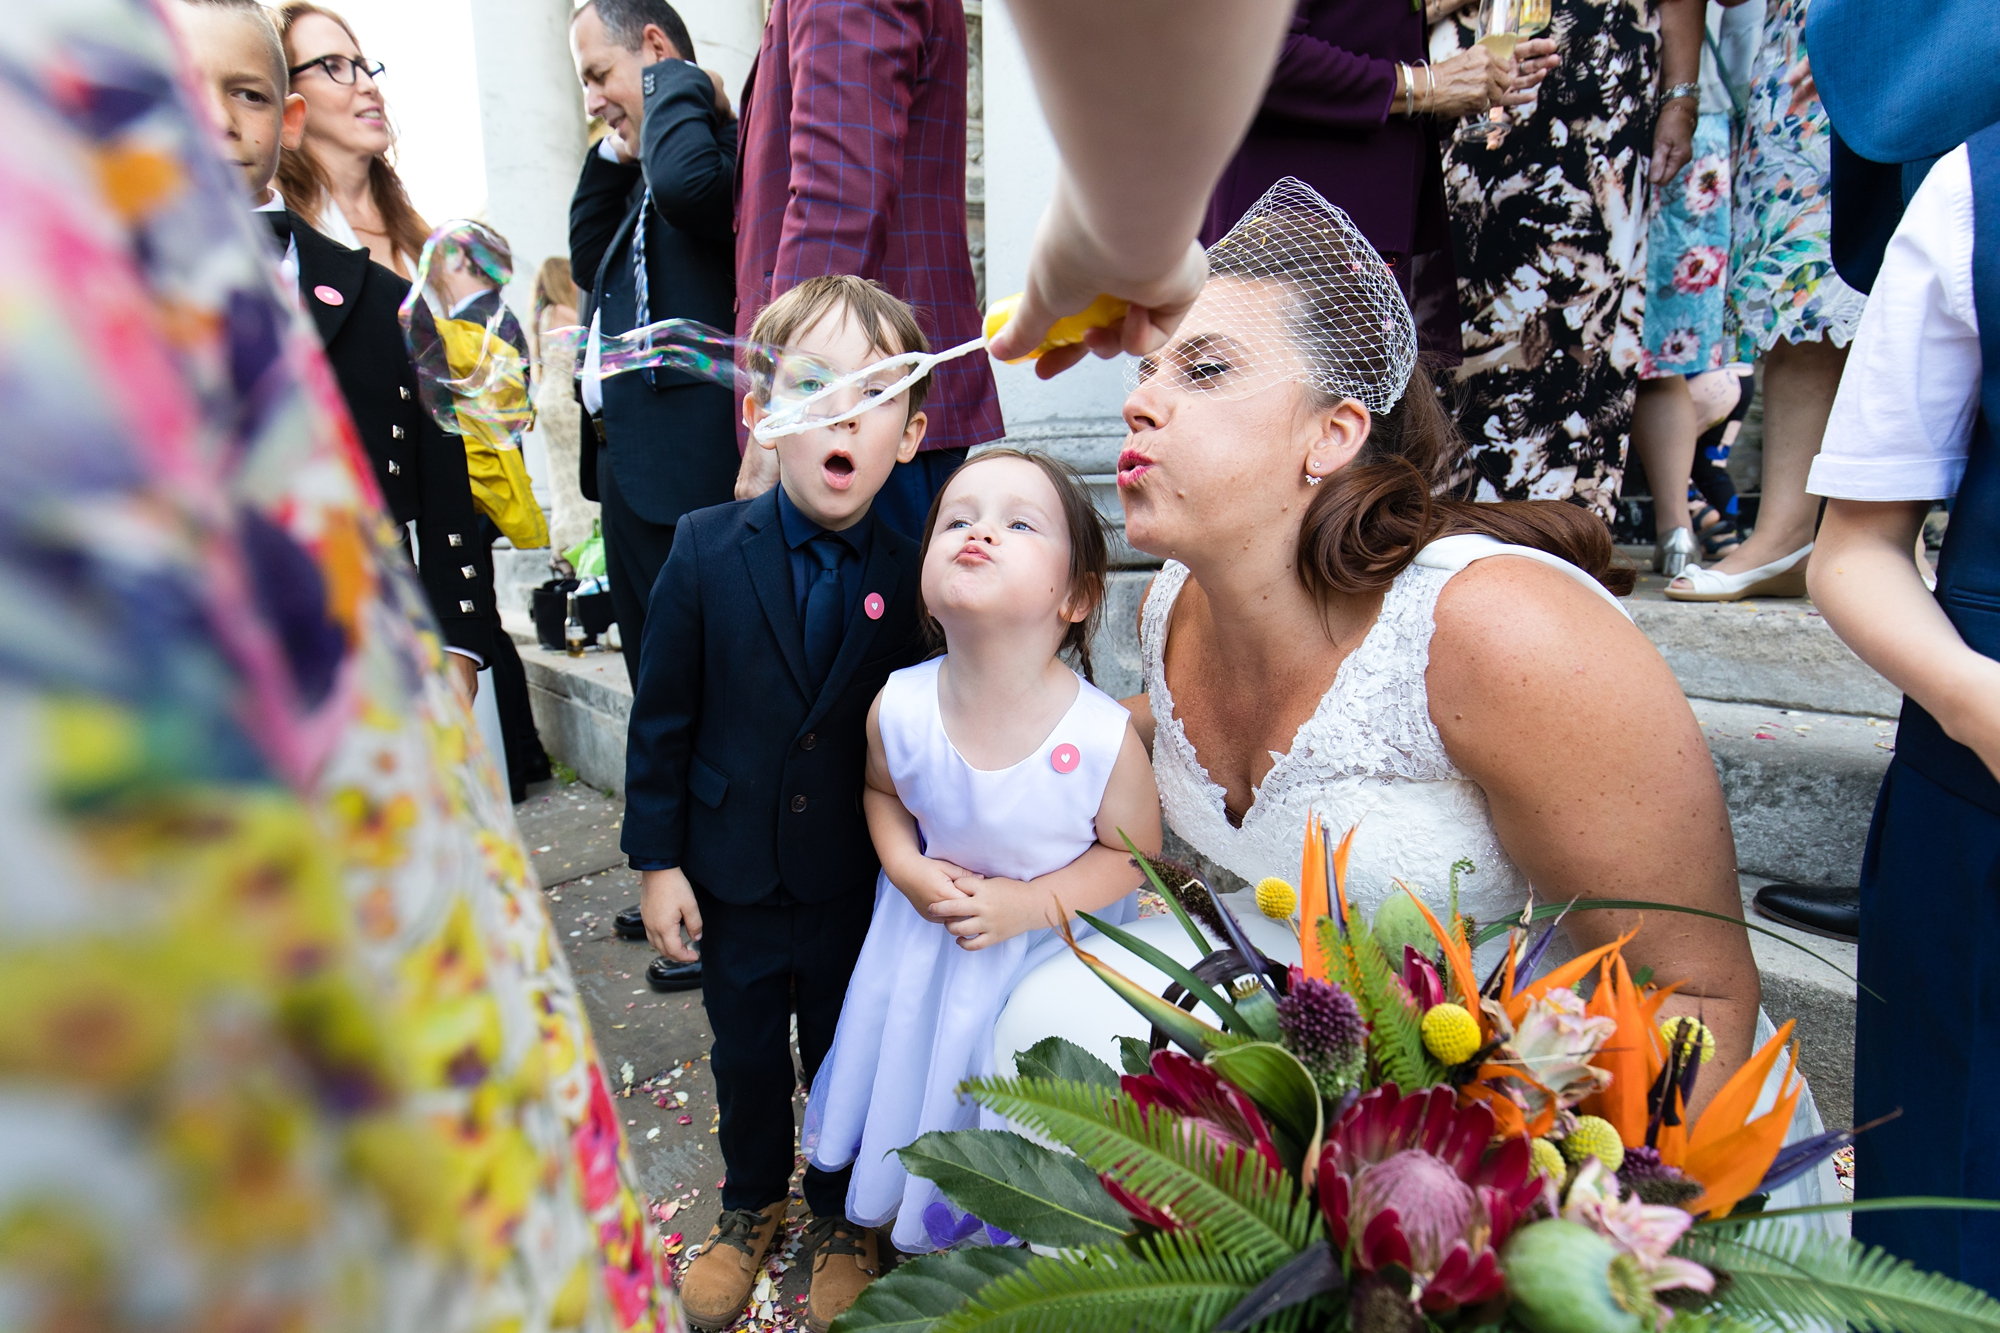 Bride blows bubbles with kids at wedding at the Asylum in London